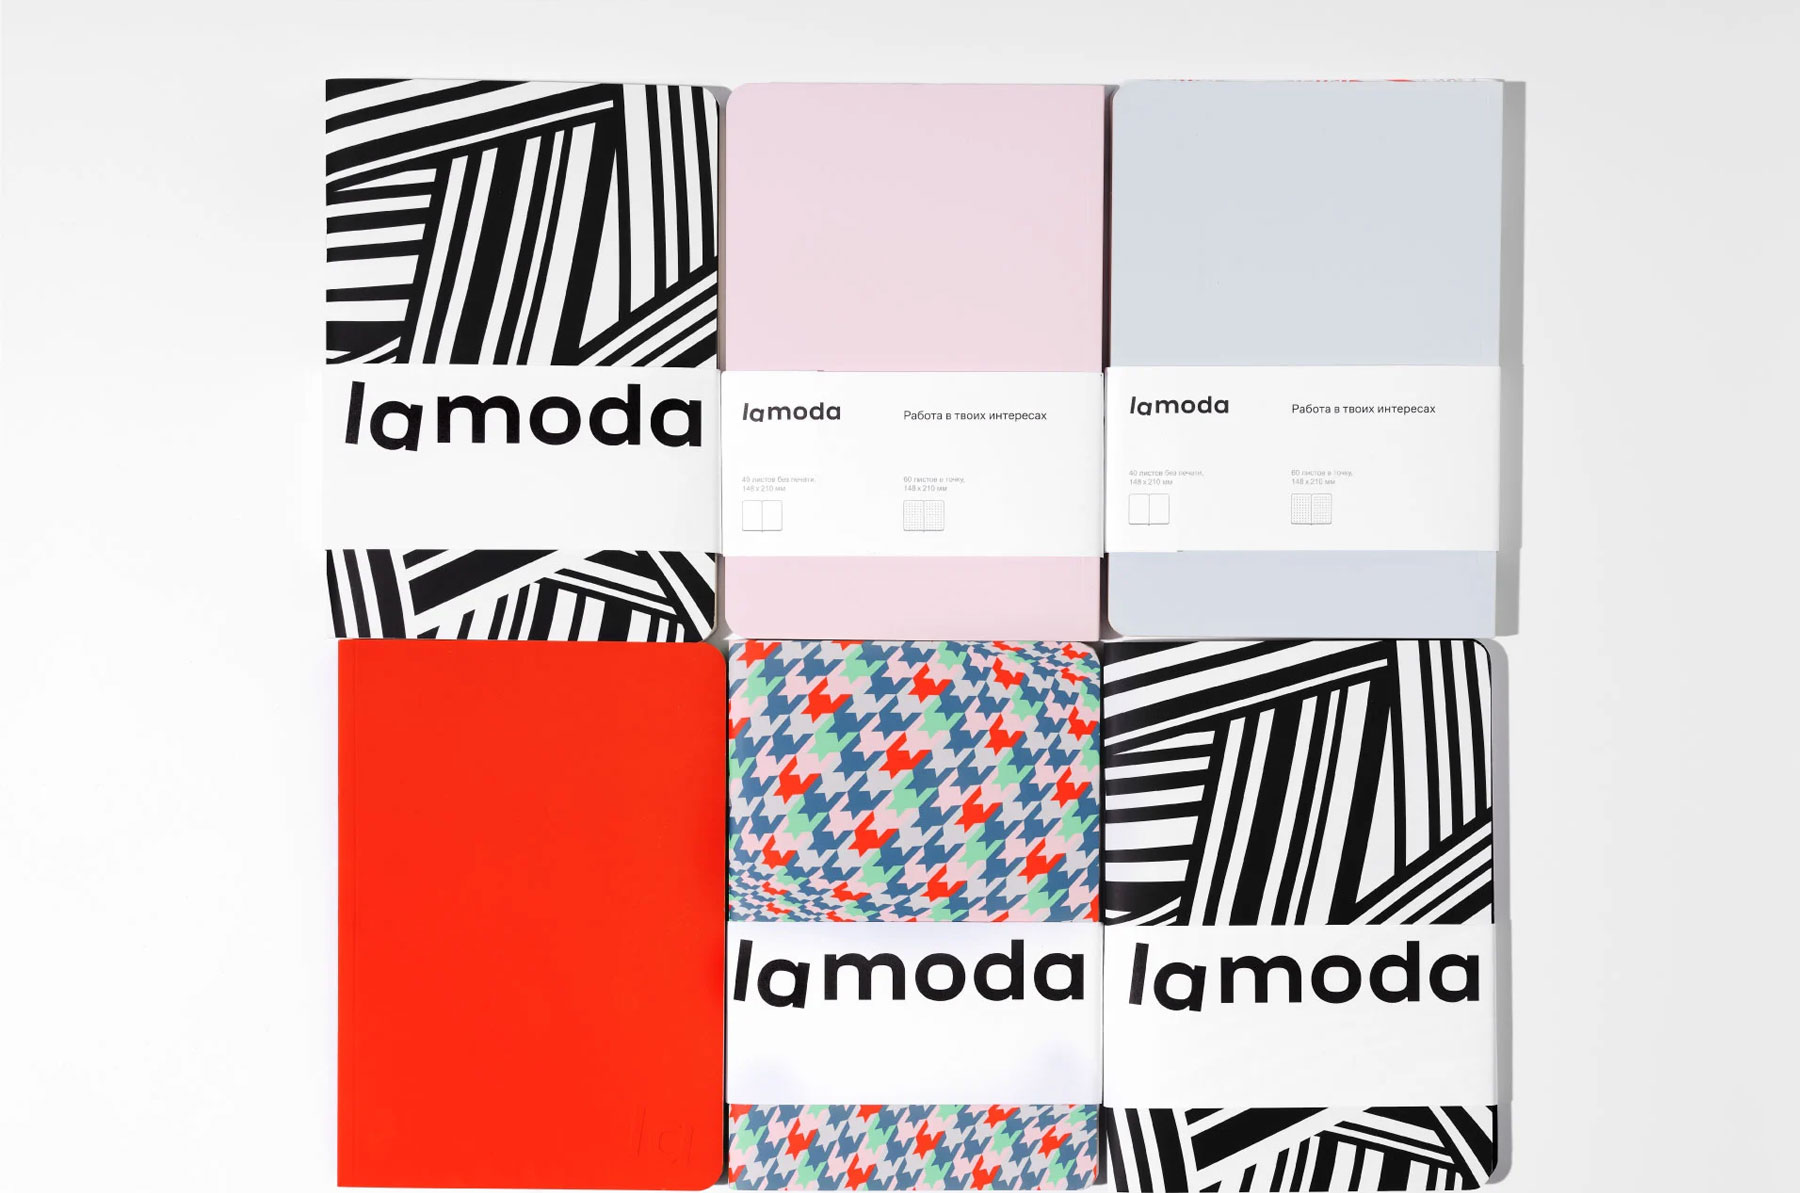 Ребрендинг, Логотип, Дизайн-бюро «Щука», Red Dot Design Award, lamoda